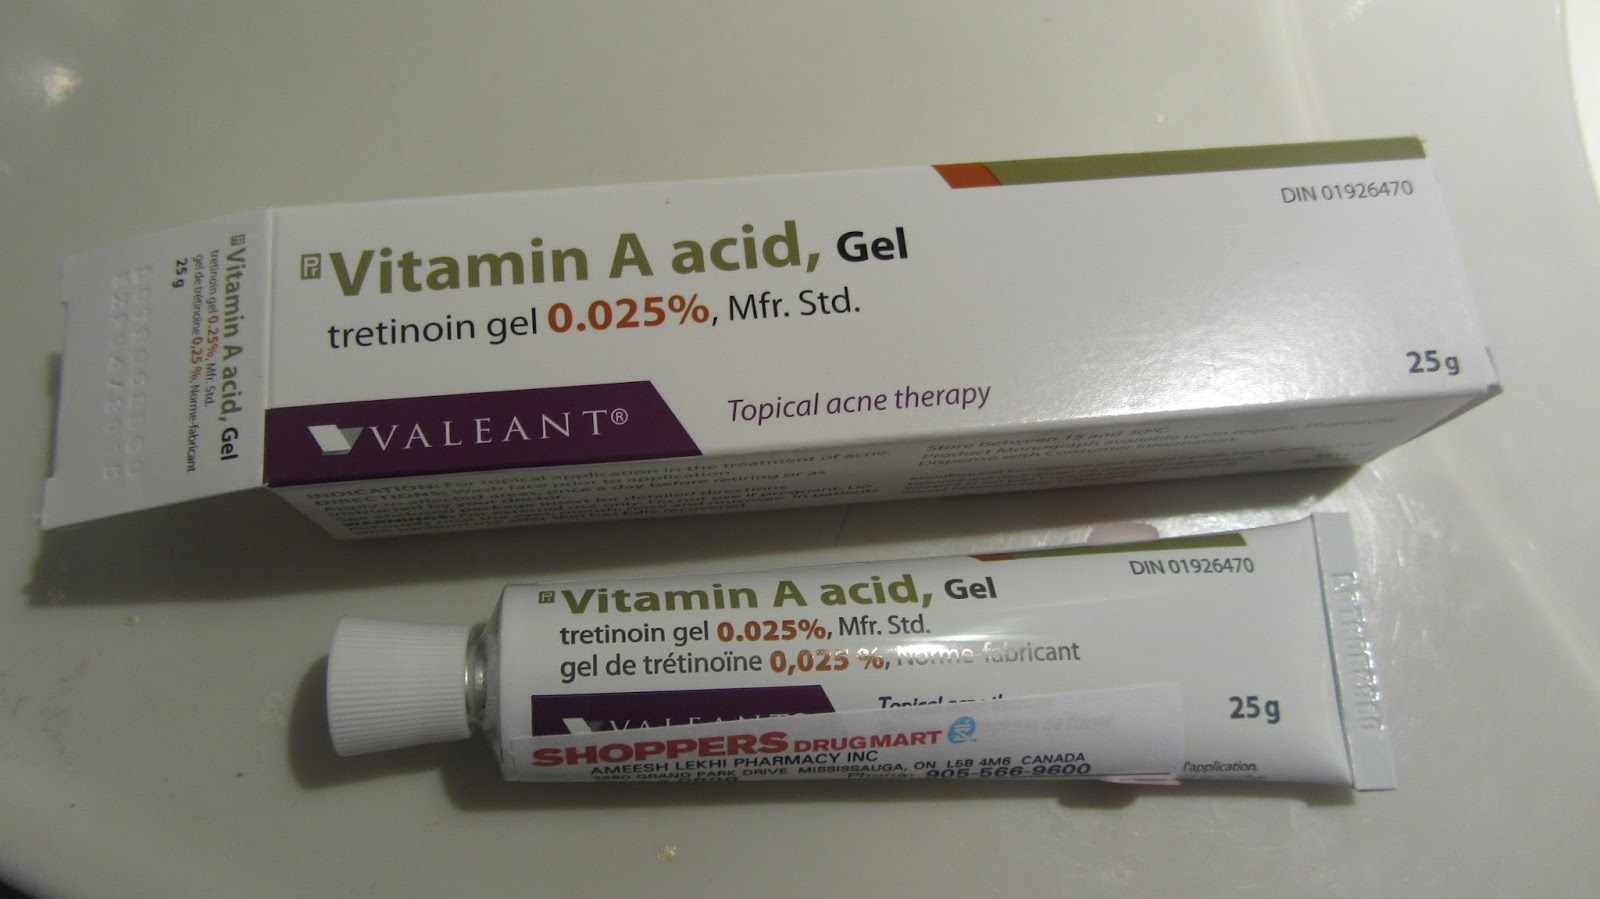 Cutetipps review: RETIN A - Vitamin A Acid Gel (Tretinoin